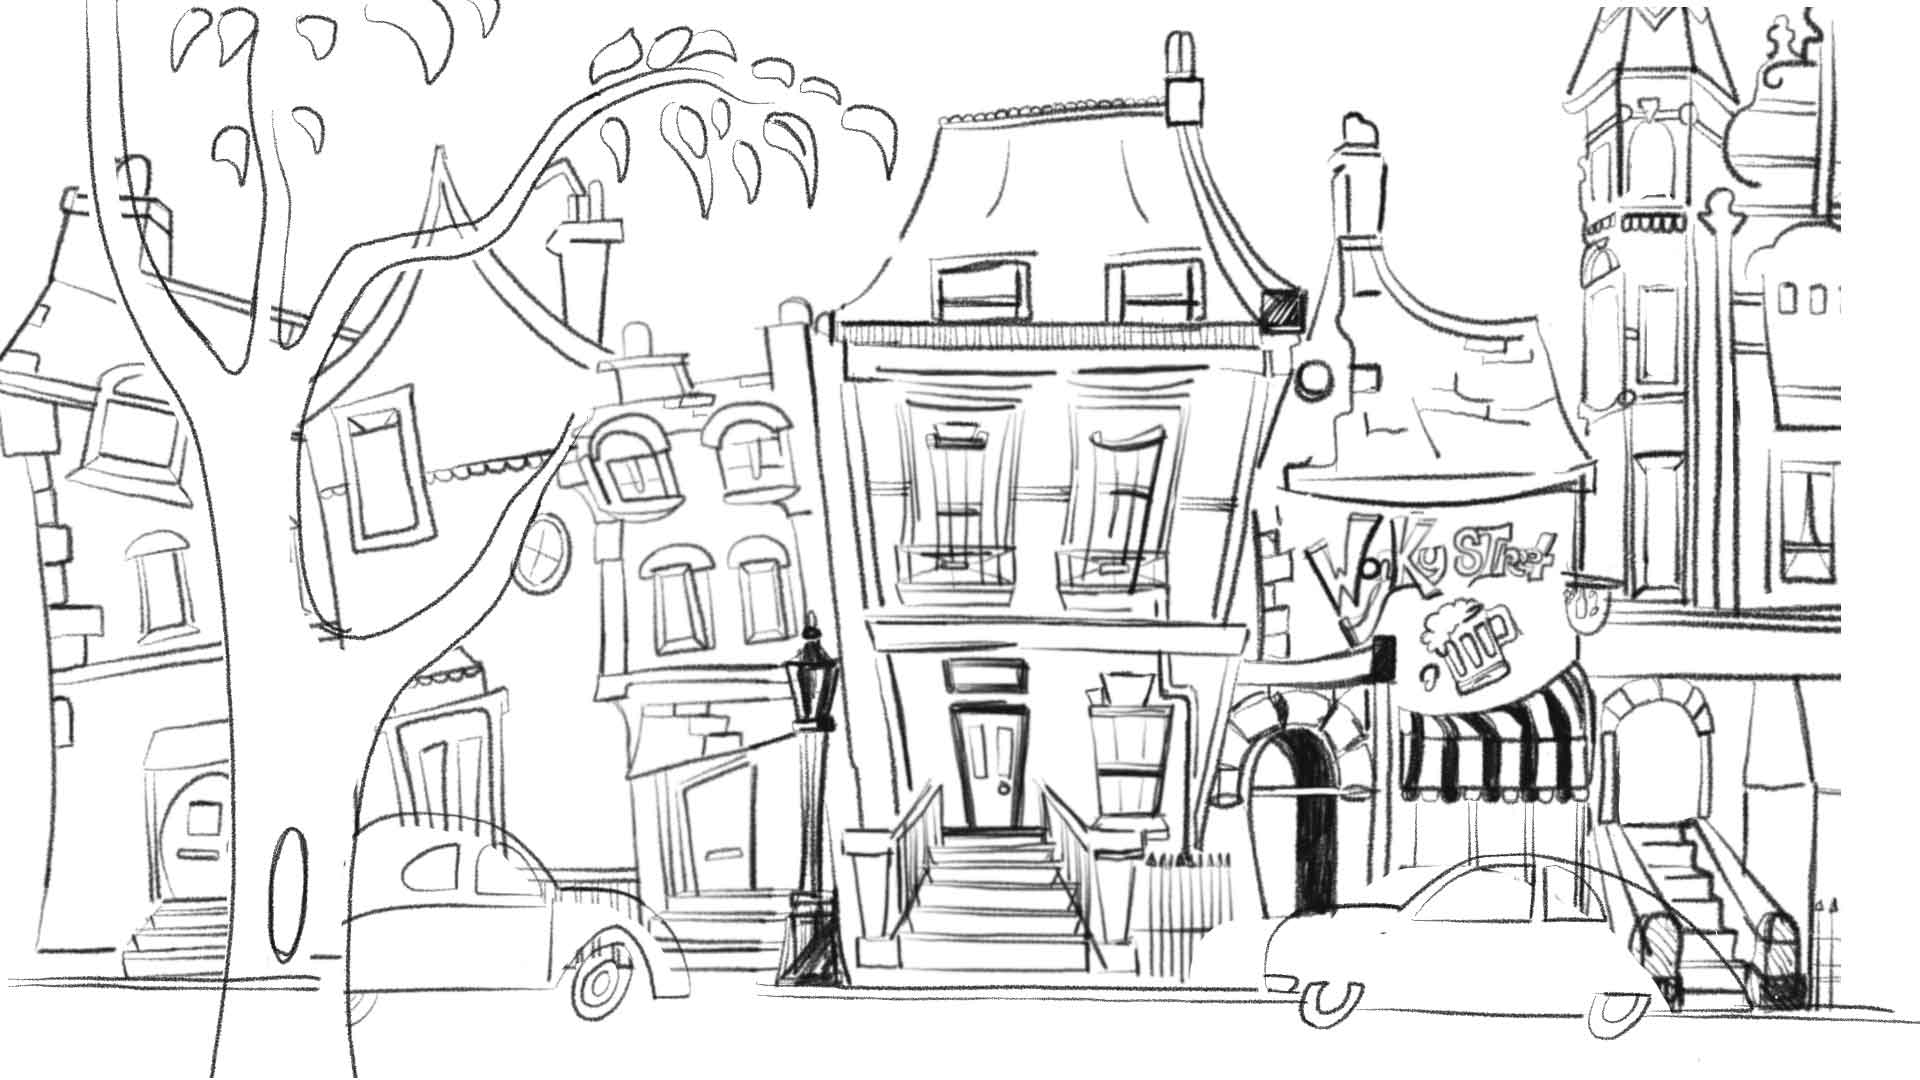 Rough sketch of wonky street scene with tree infront